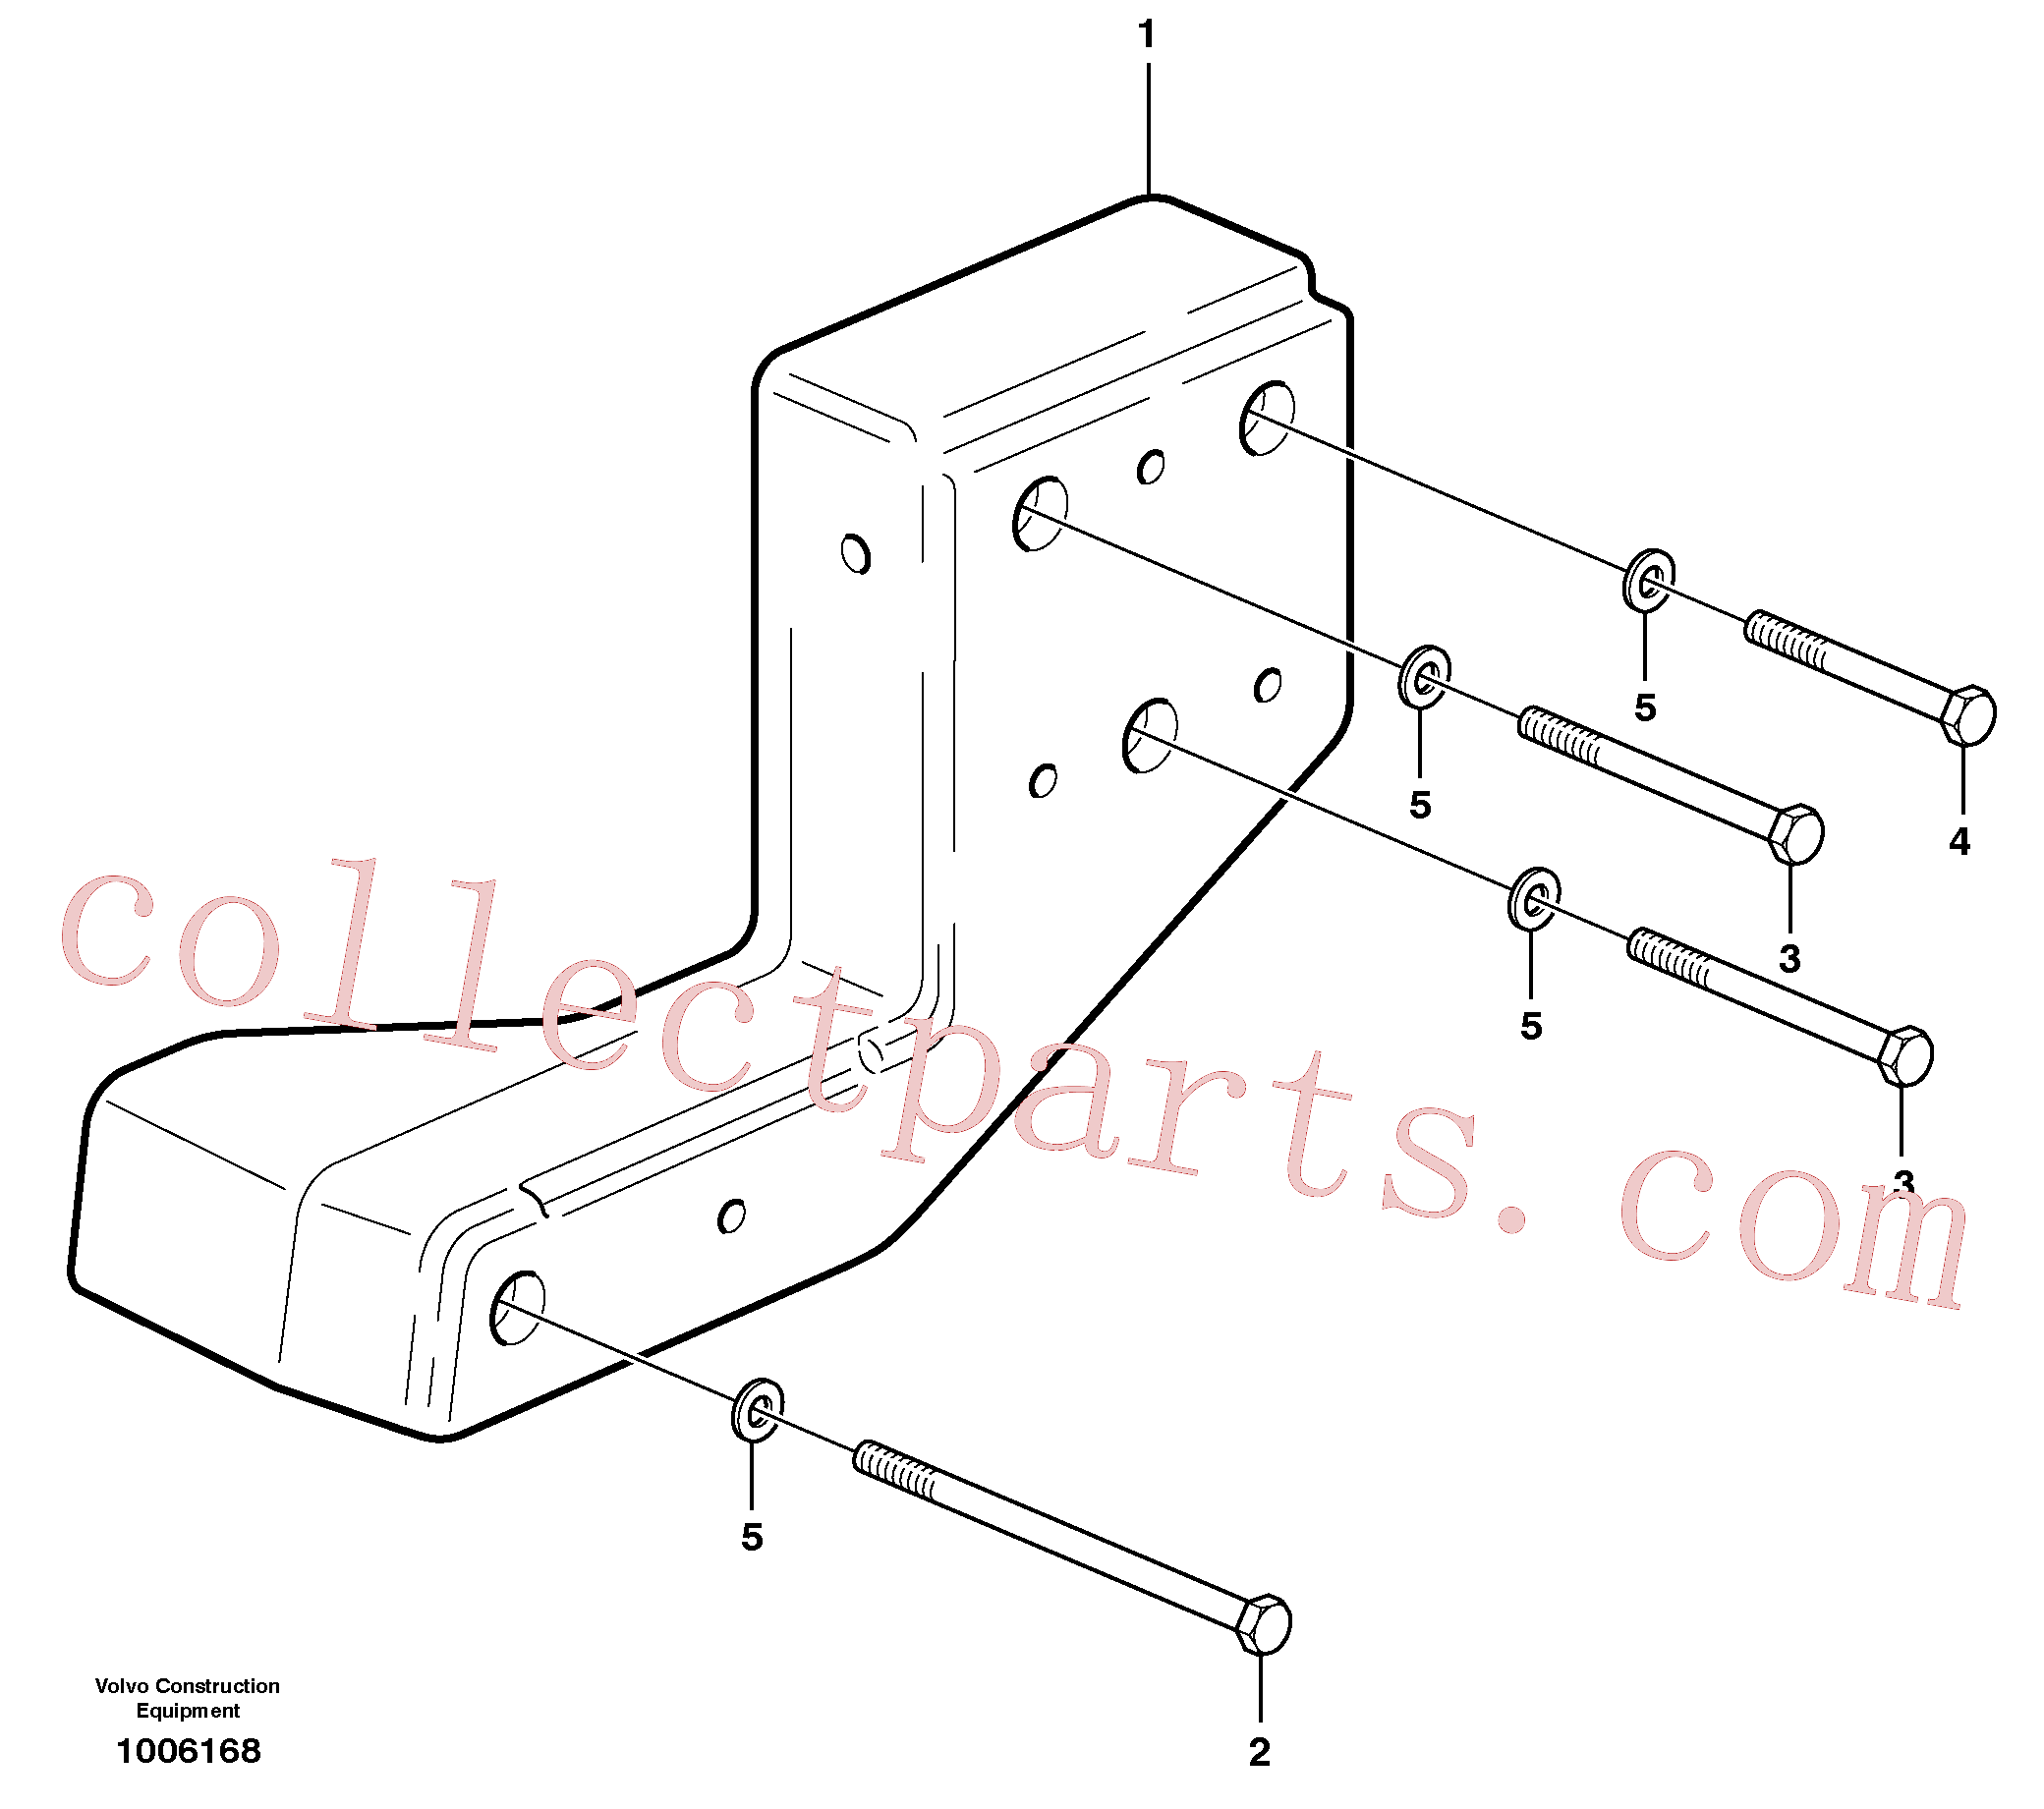 VOE13974302 for Volvo Counterweight(1006168 assembly)